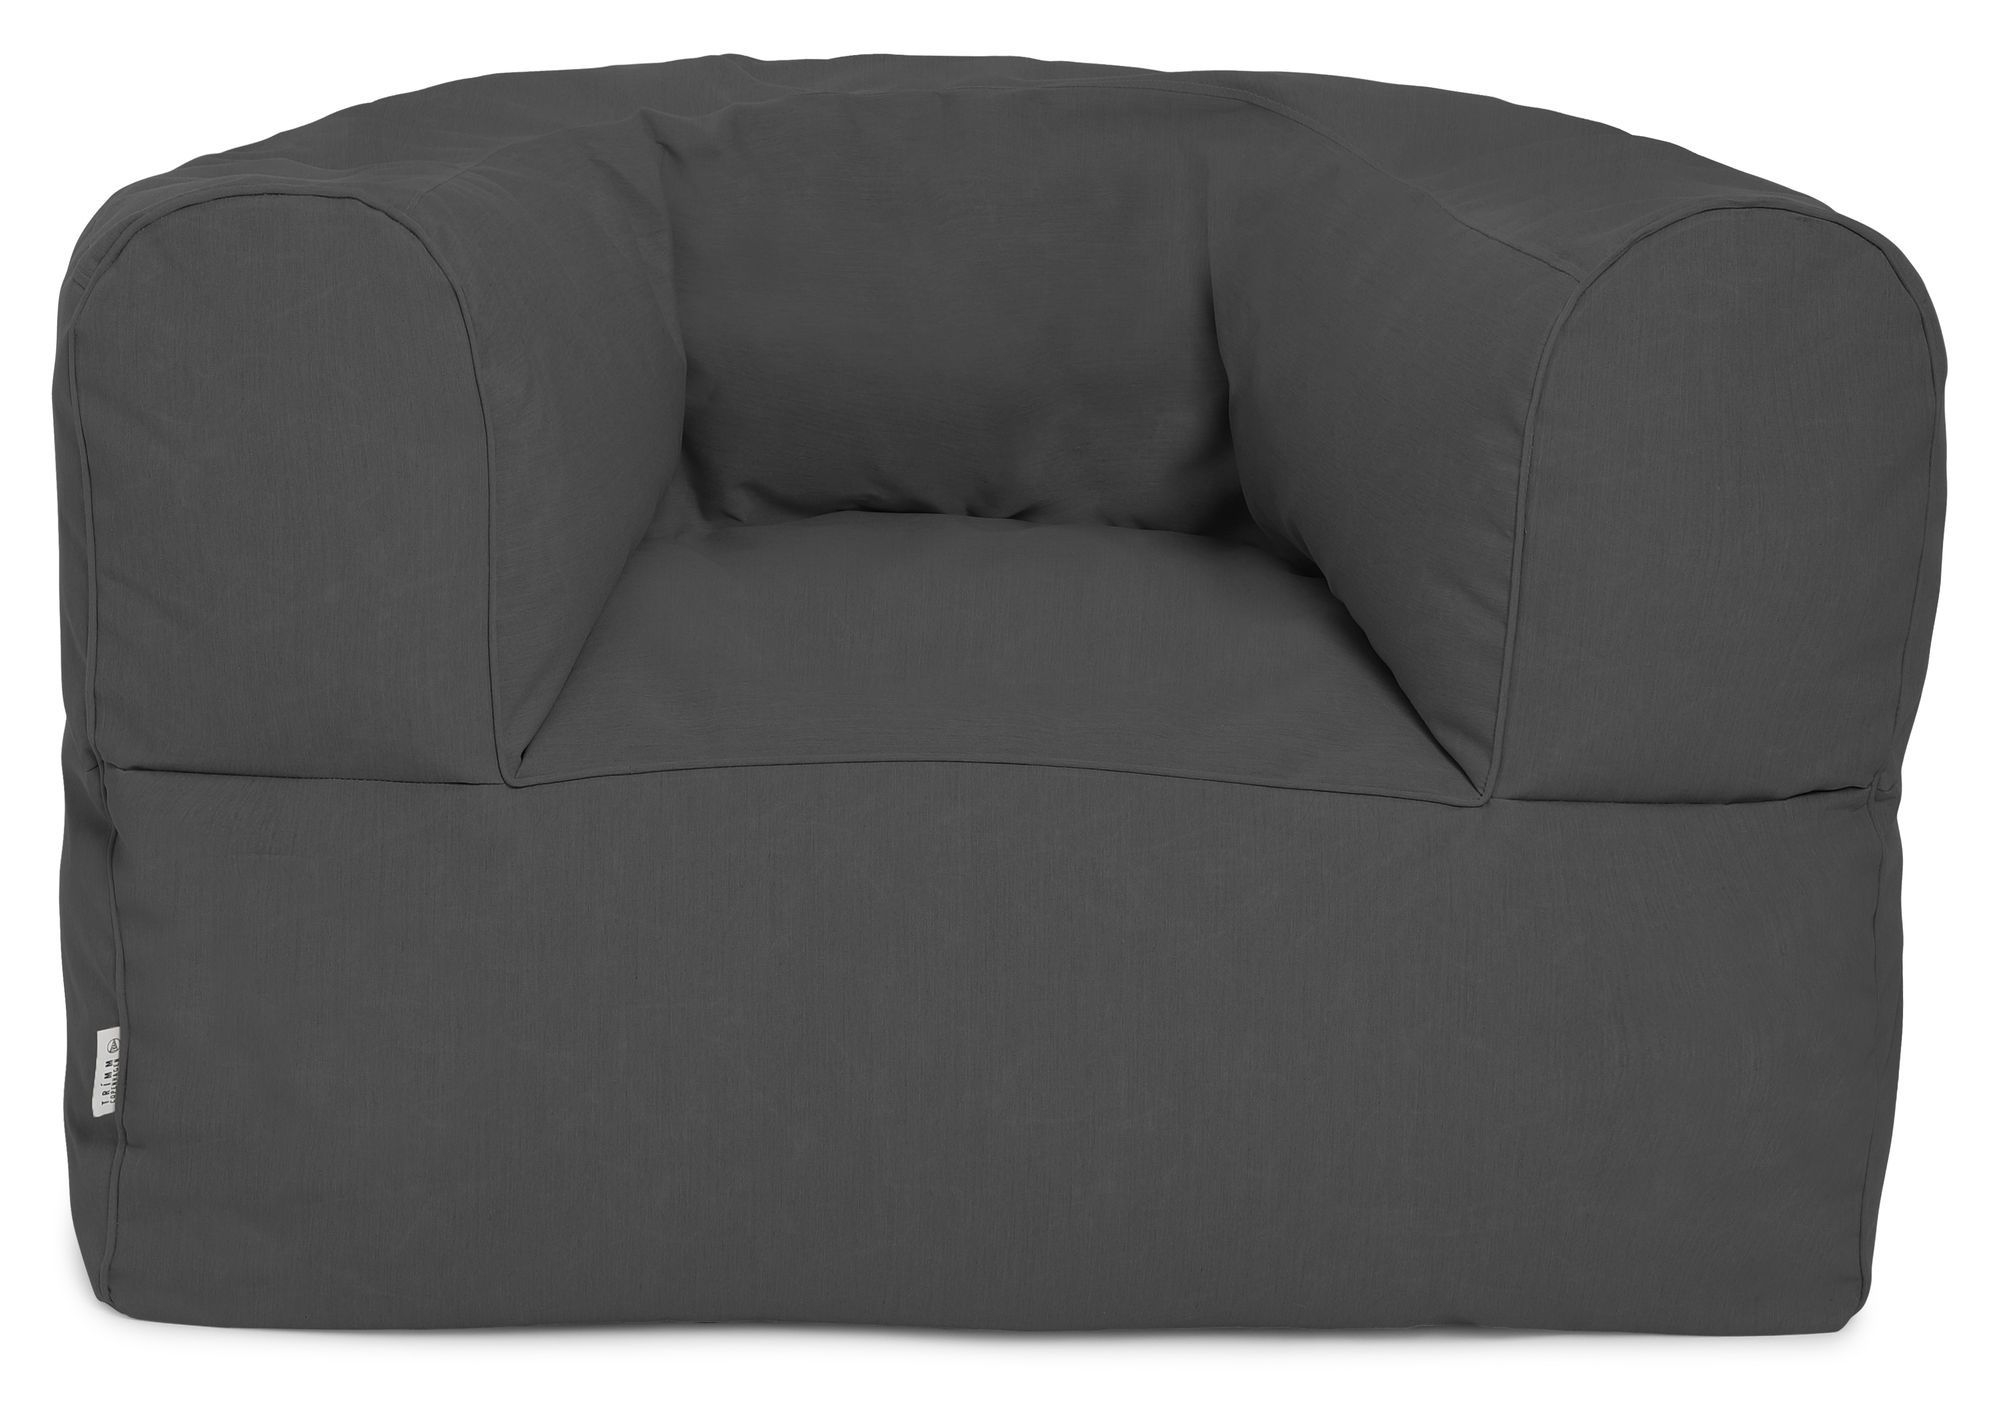 Arm-Strong Loungestol - Graphite